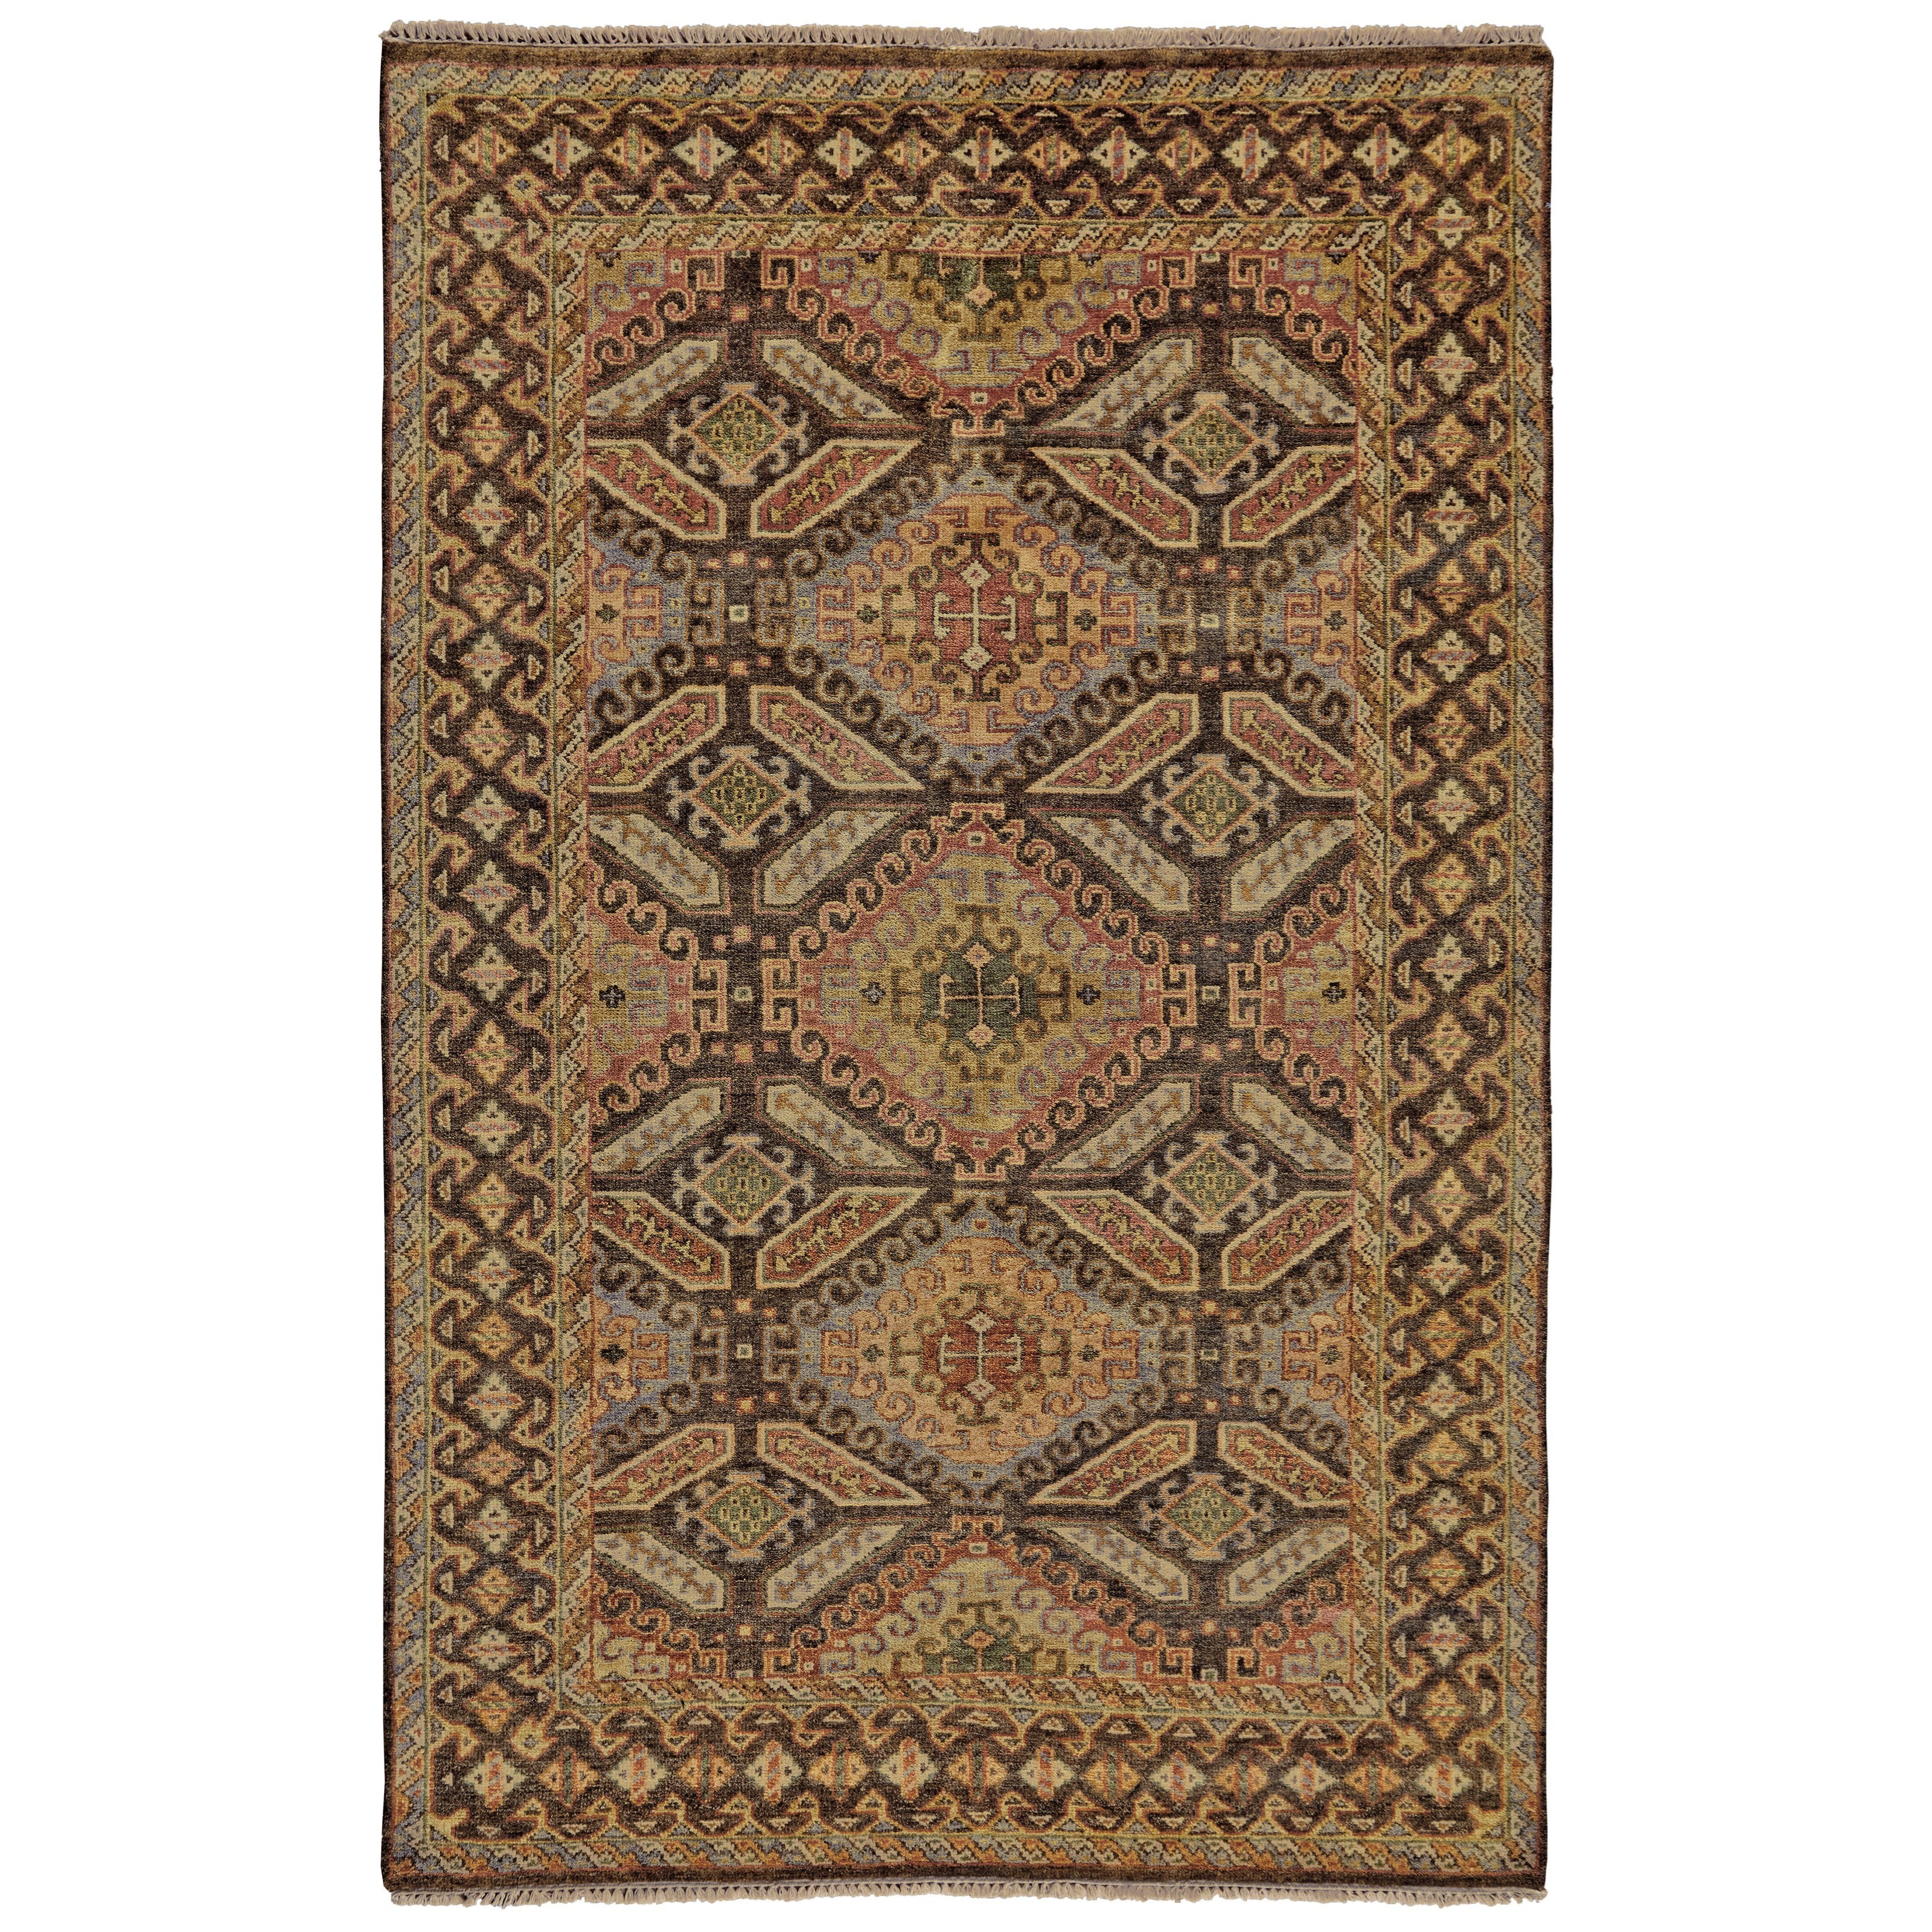 """Ashi Brown/Brown 9'-6"""" x 13'-6"""" Area Rug by Feizy Rugs at Sprintz Furniture"""